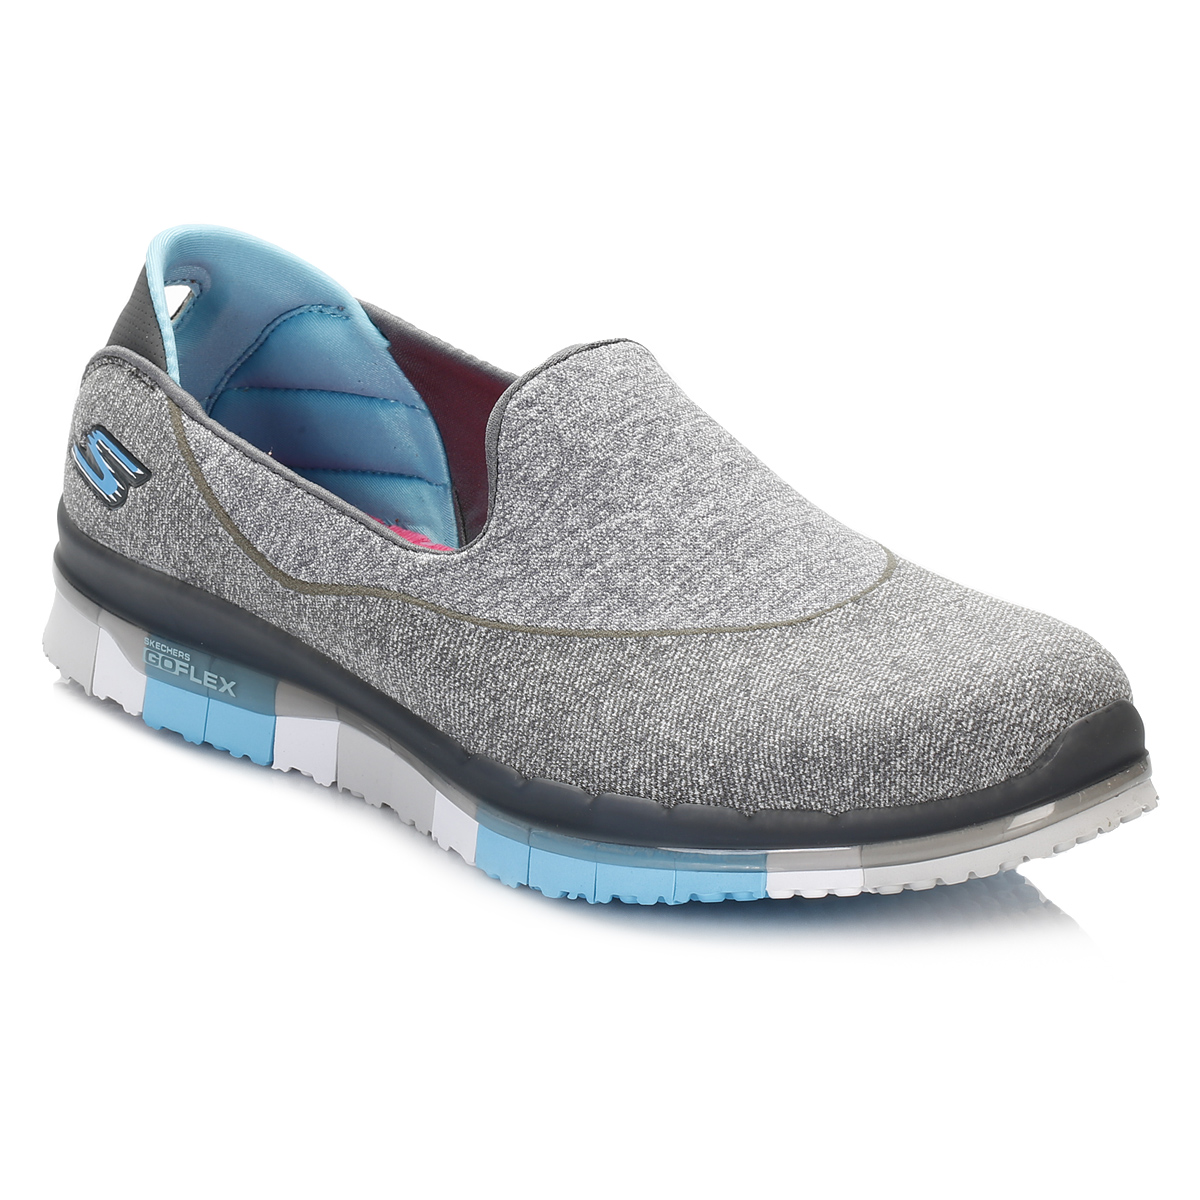 skechers womens charcoal grey go flex walk shoes textile slip on casual ladies ebay. Black Bedroom Furniture Sets. Home Design Ideas